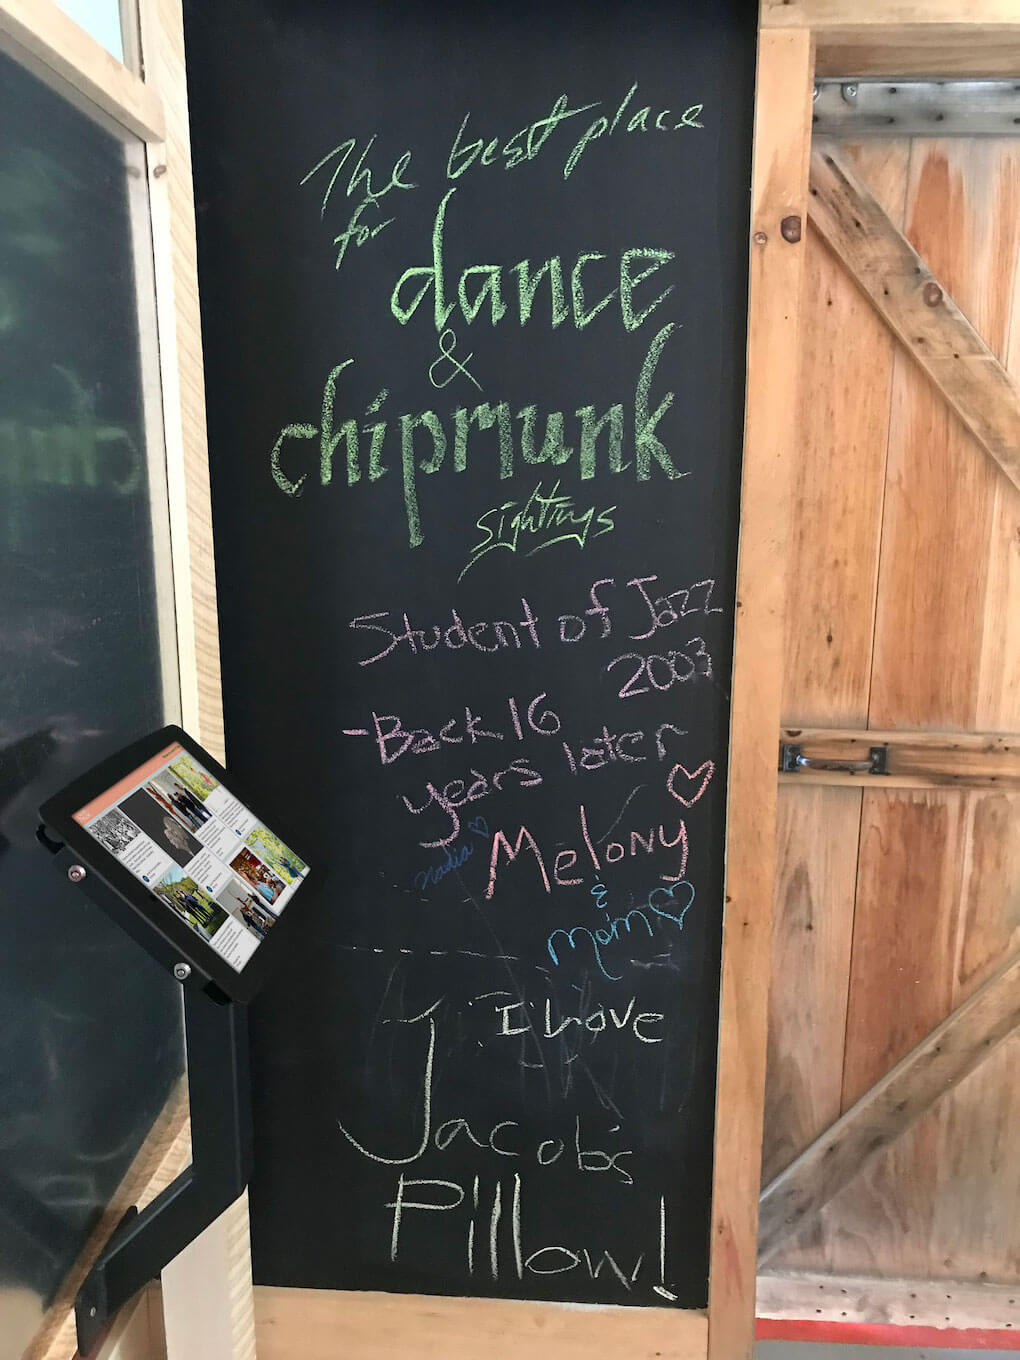 An iPad showing the Jacob's Pillow social media wall is mounted in front of a blackboard with scribbled messages at the Jacob's Pillow Welcome Center.